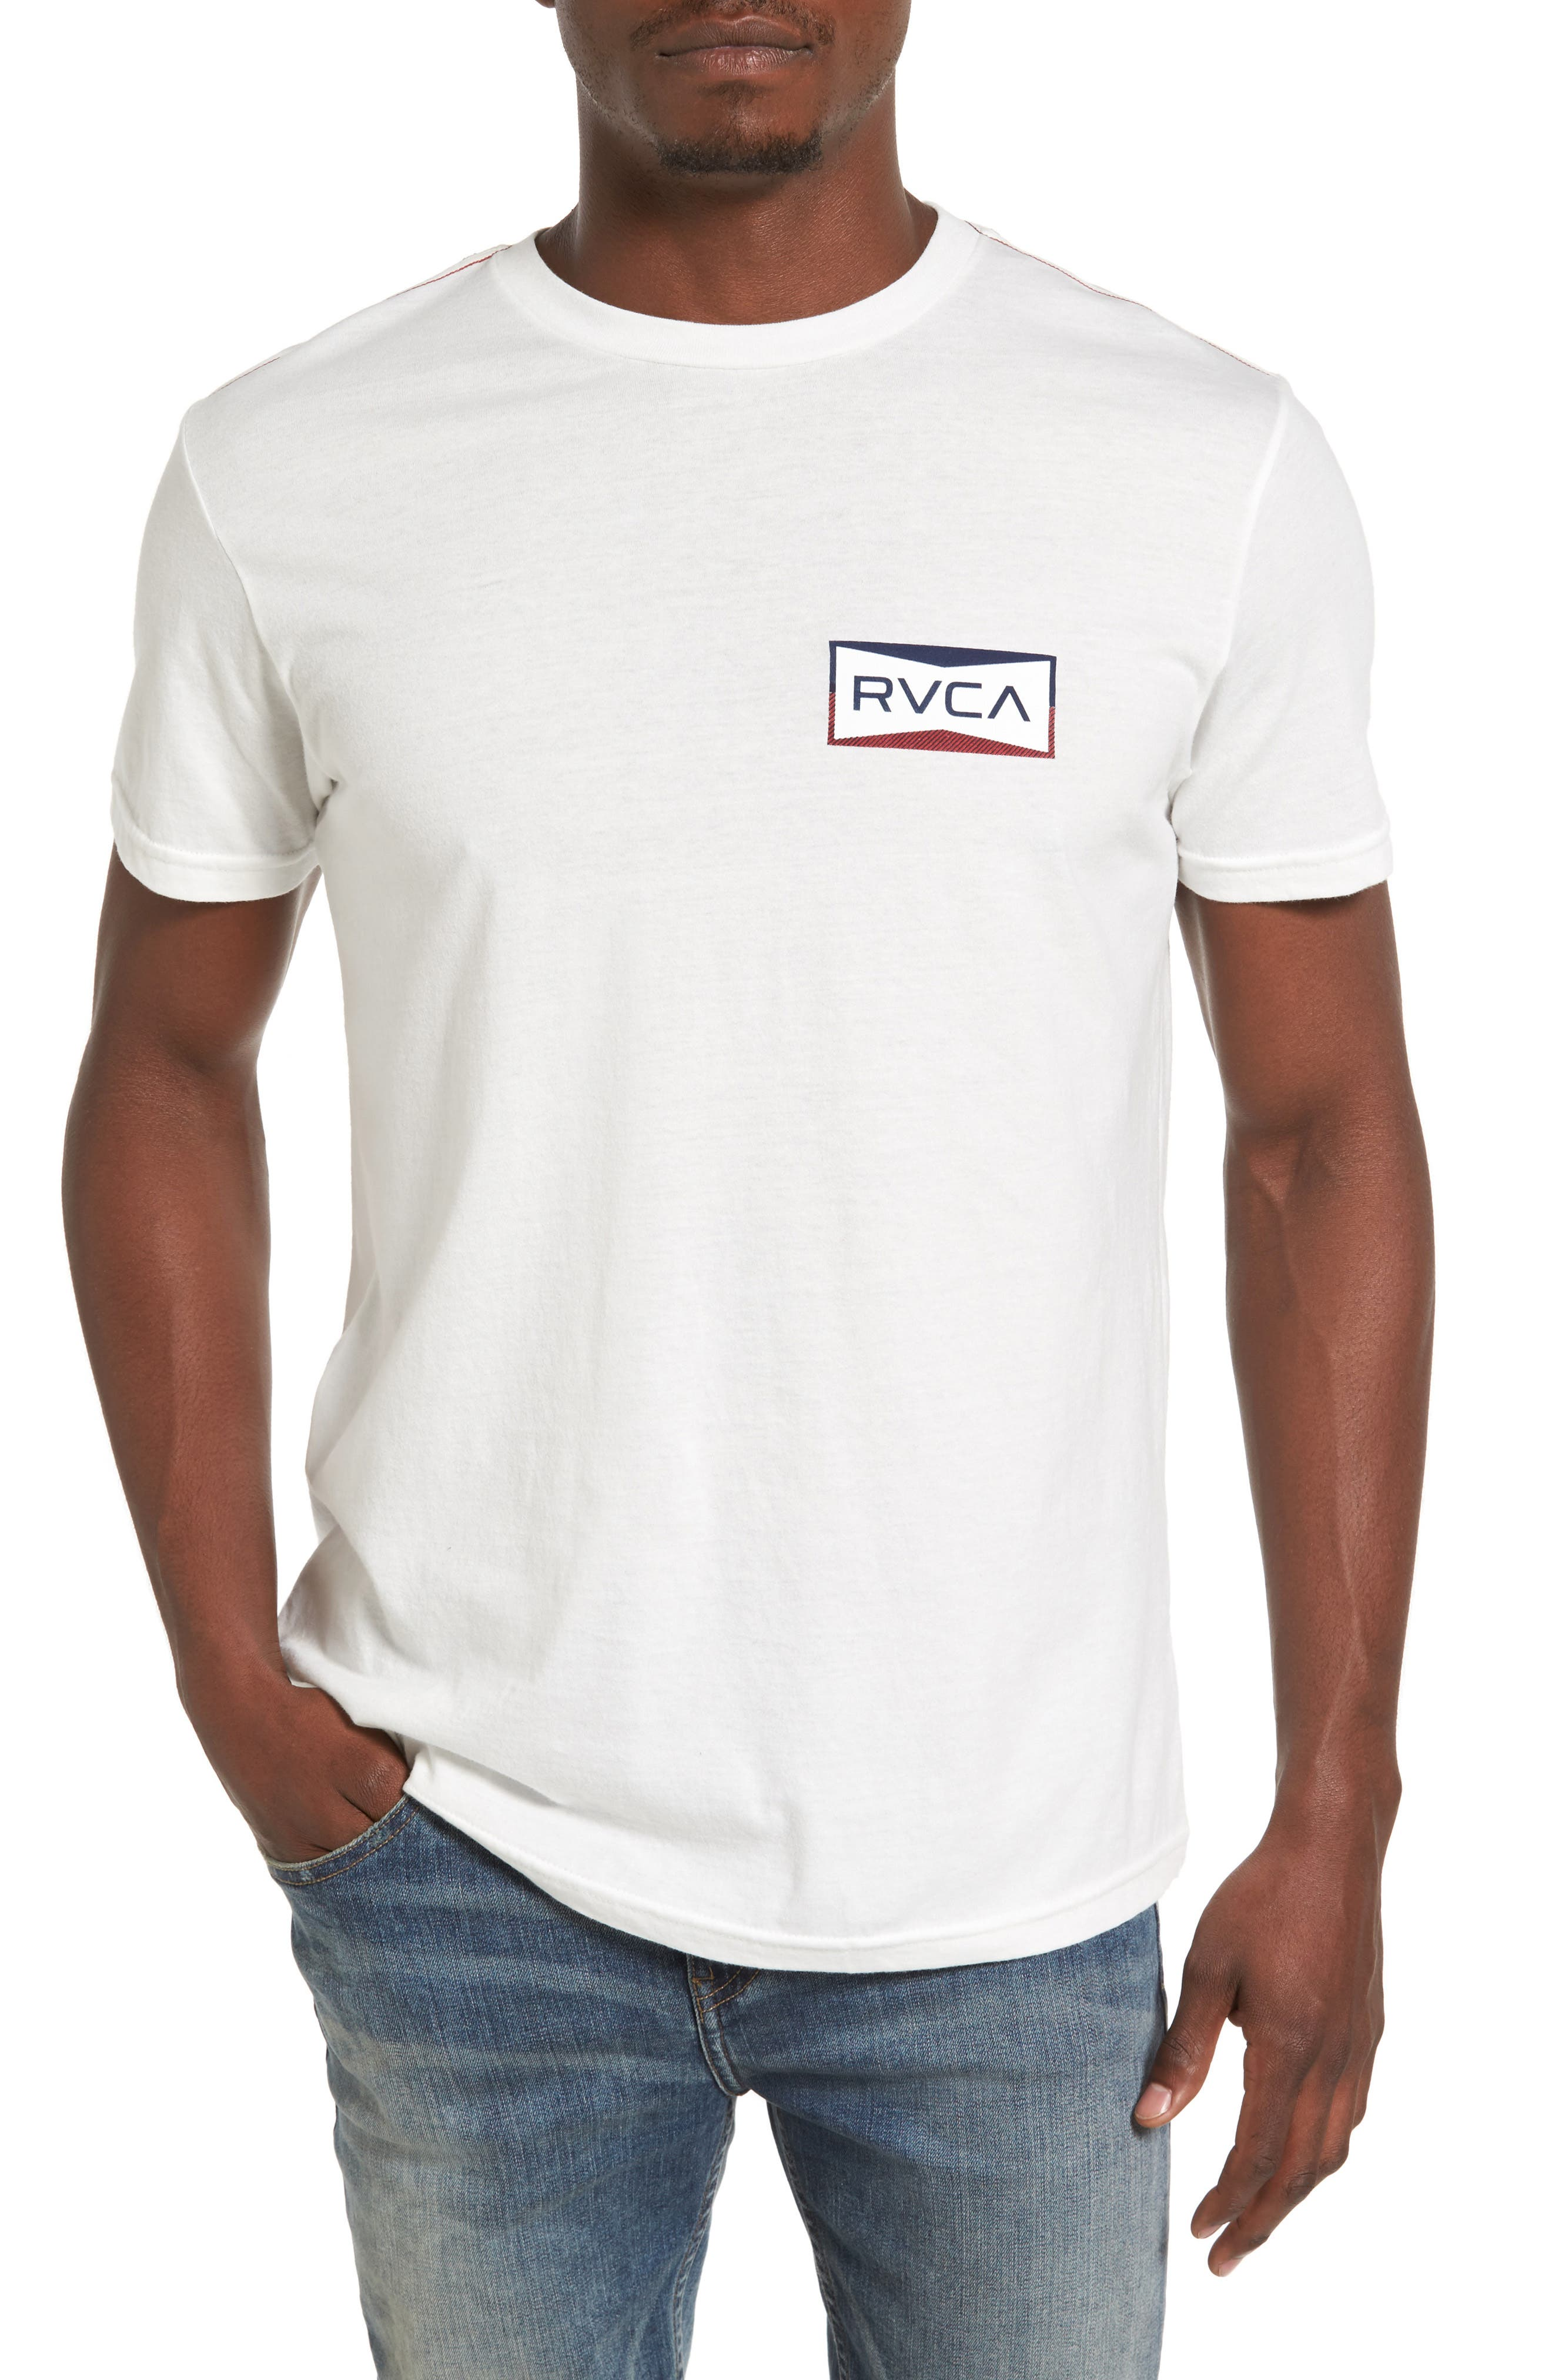 RVCA Rereds Graphic T-Shirt